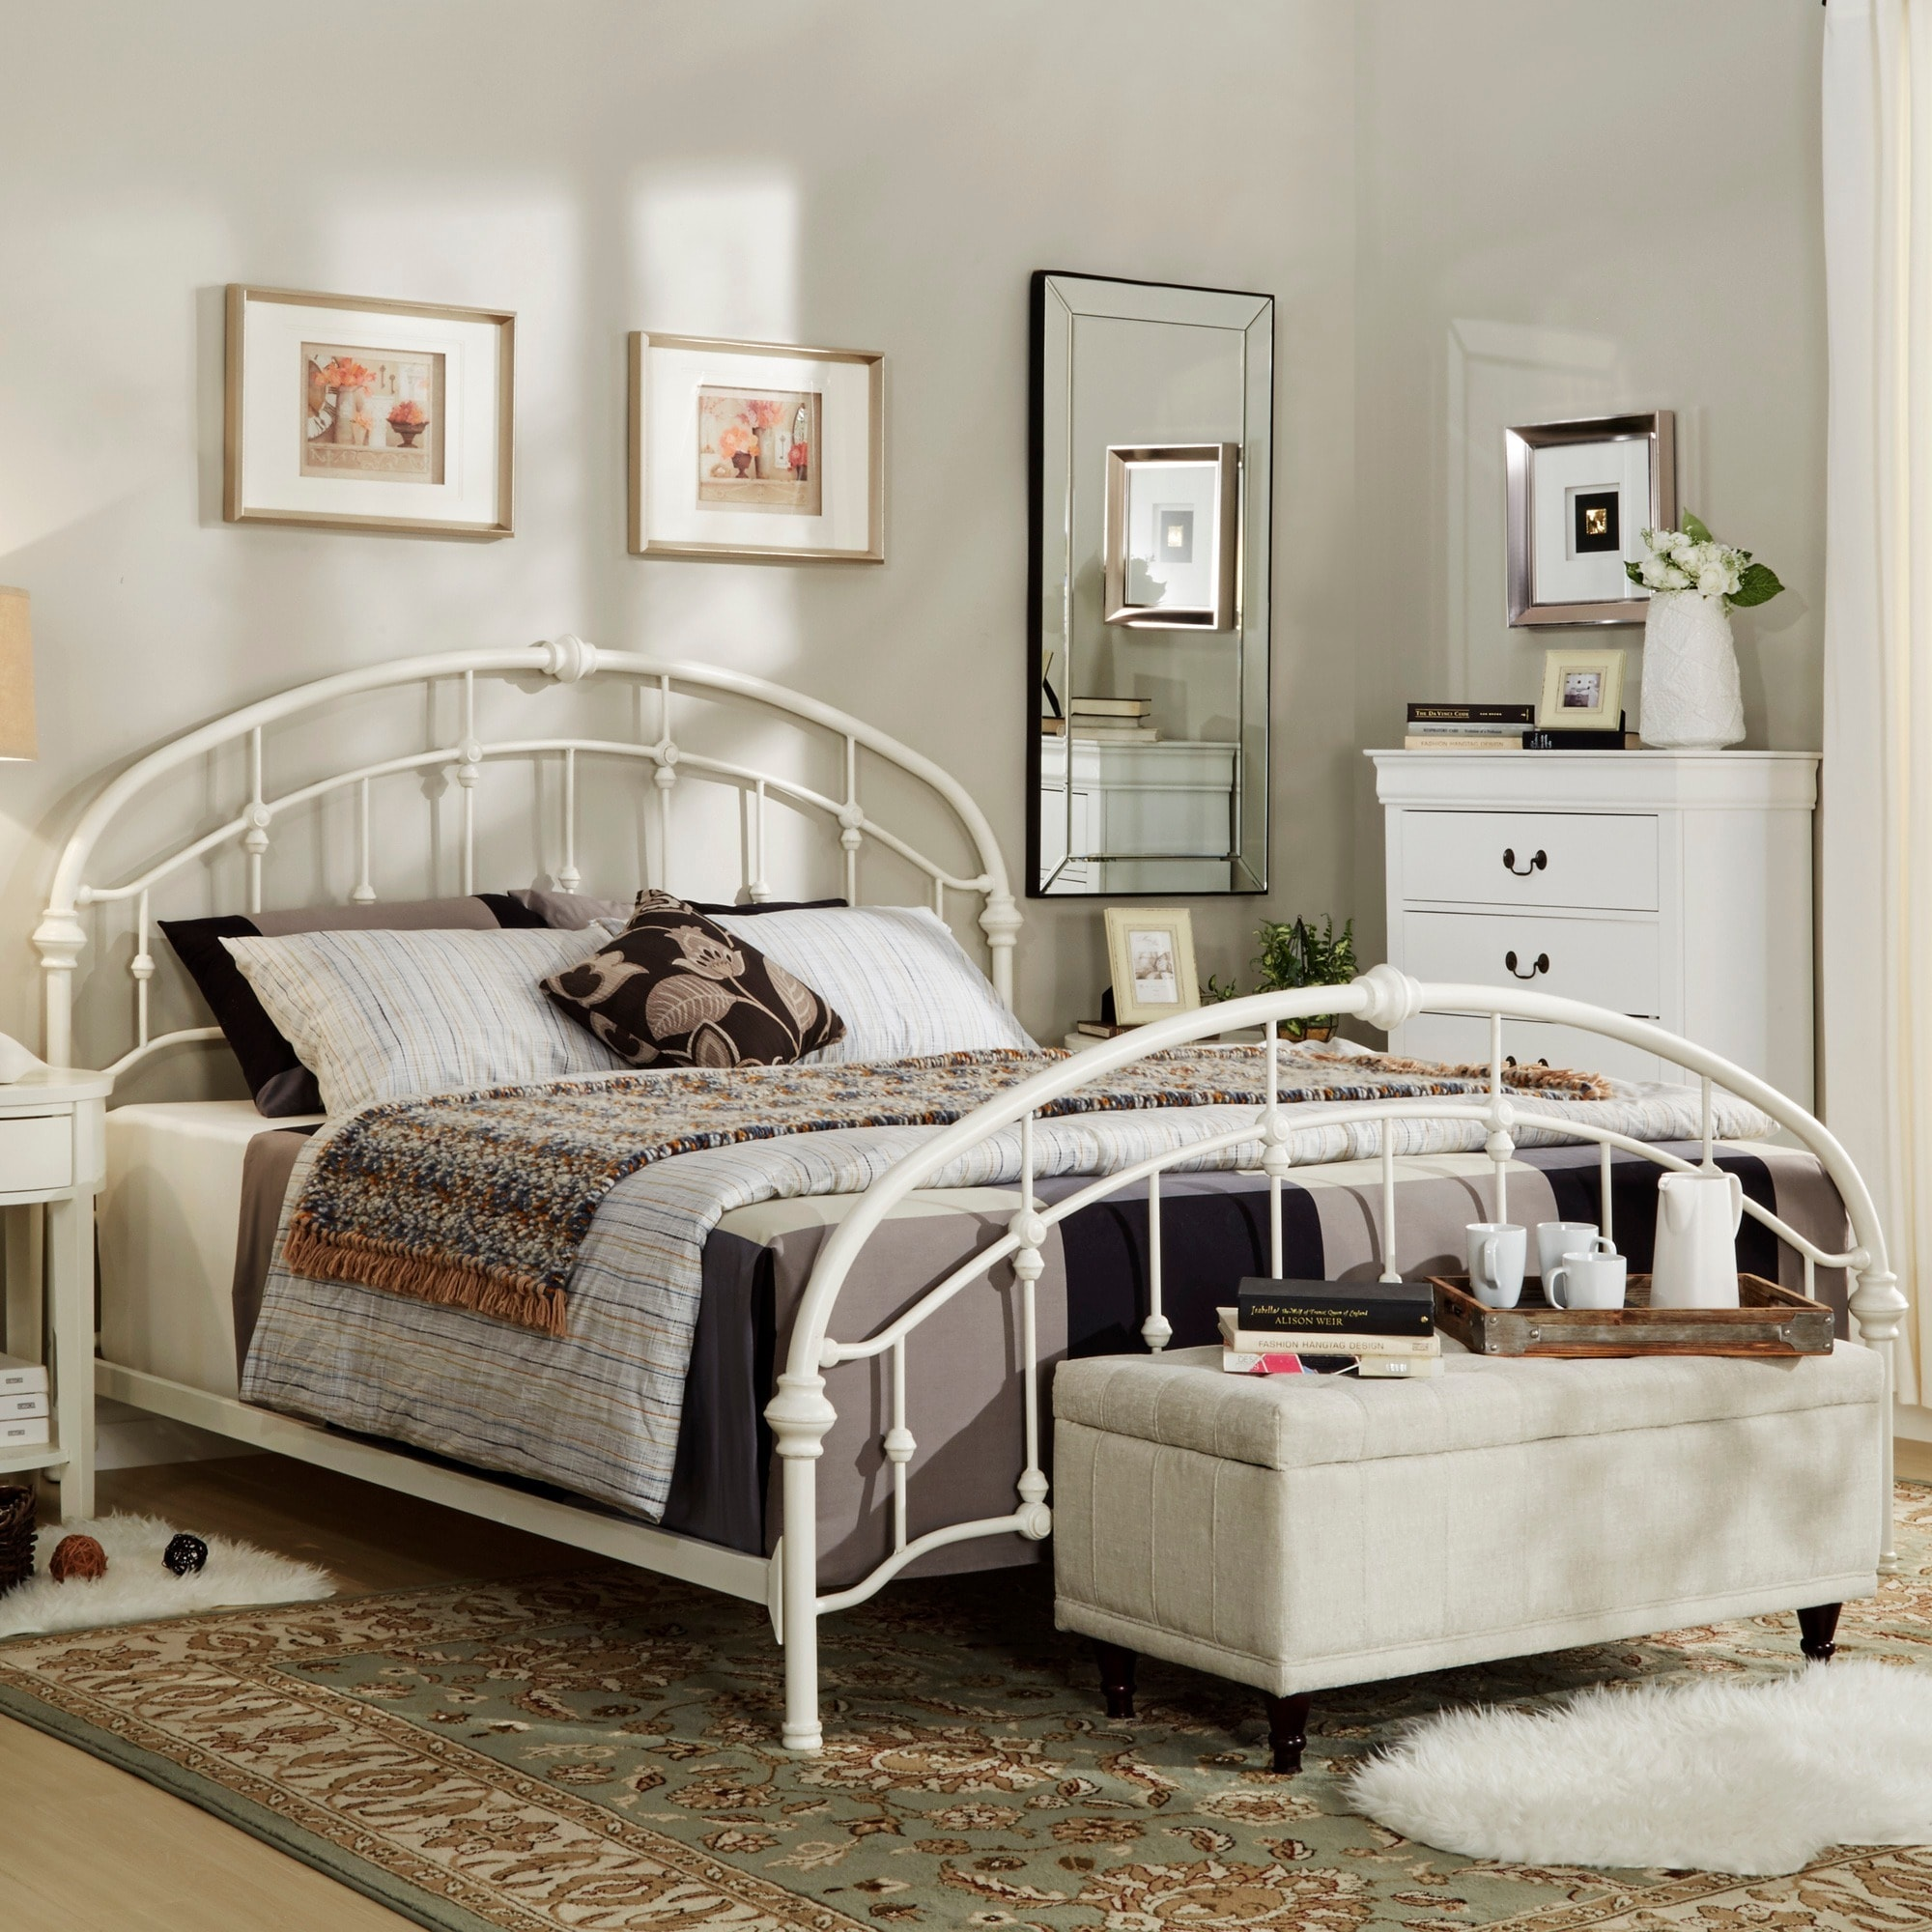 beds bed round sale en for rooms